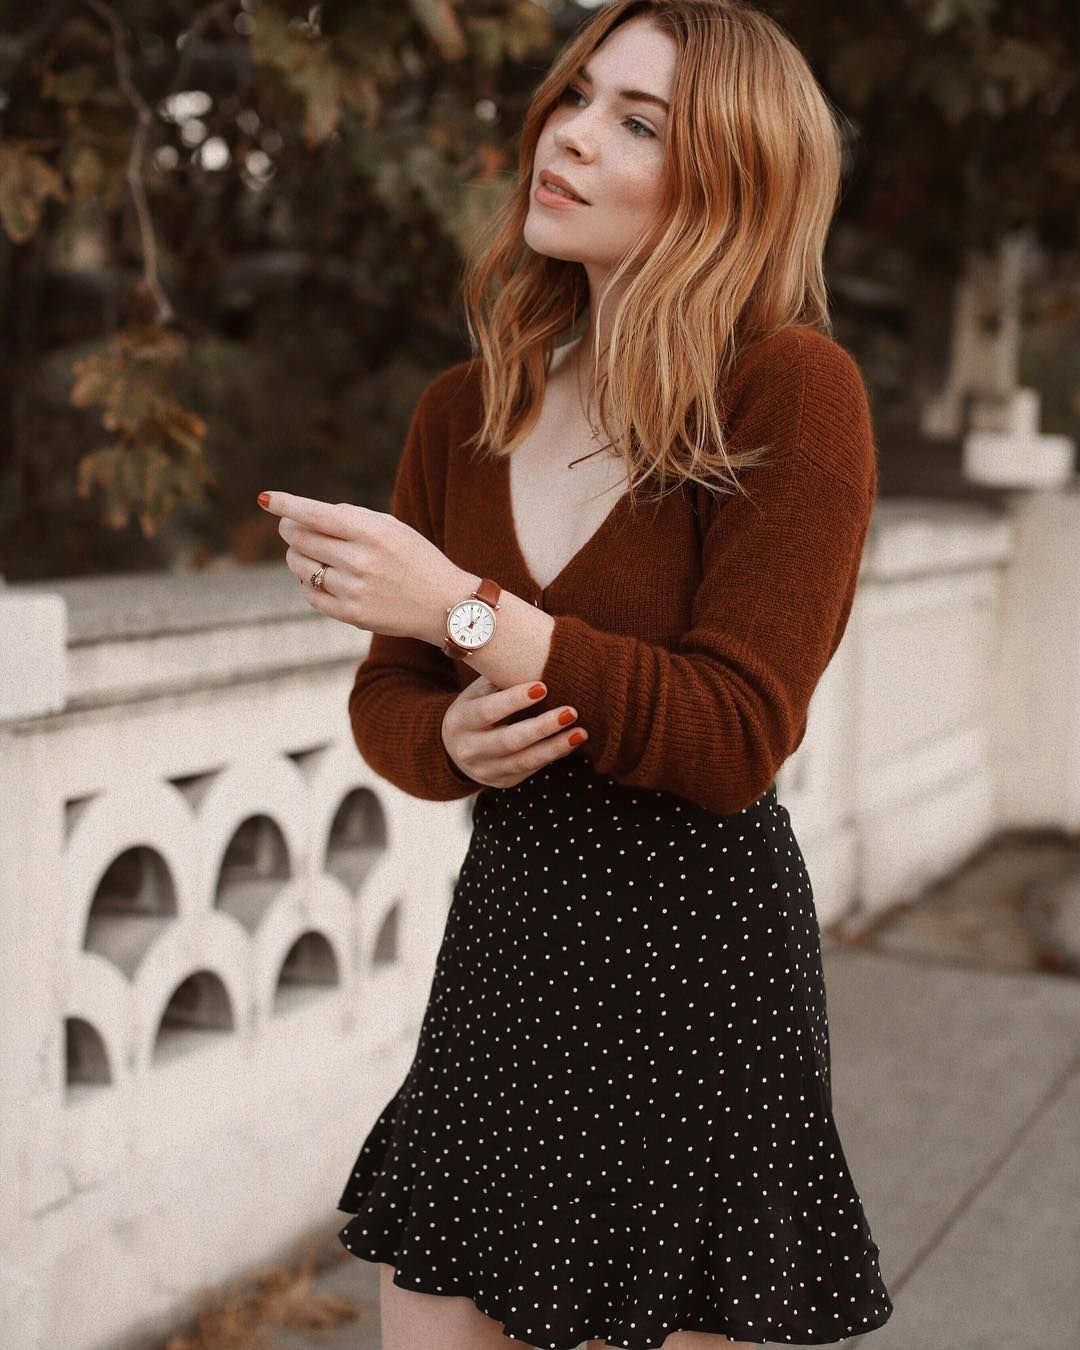 "4d3a9fe29c Courtney Halverson on Instagram: ""October has to be my favorite month of the  whole year - I love getting to style fall looks. 🍂 Adding the final touch  to ..."